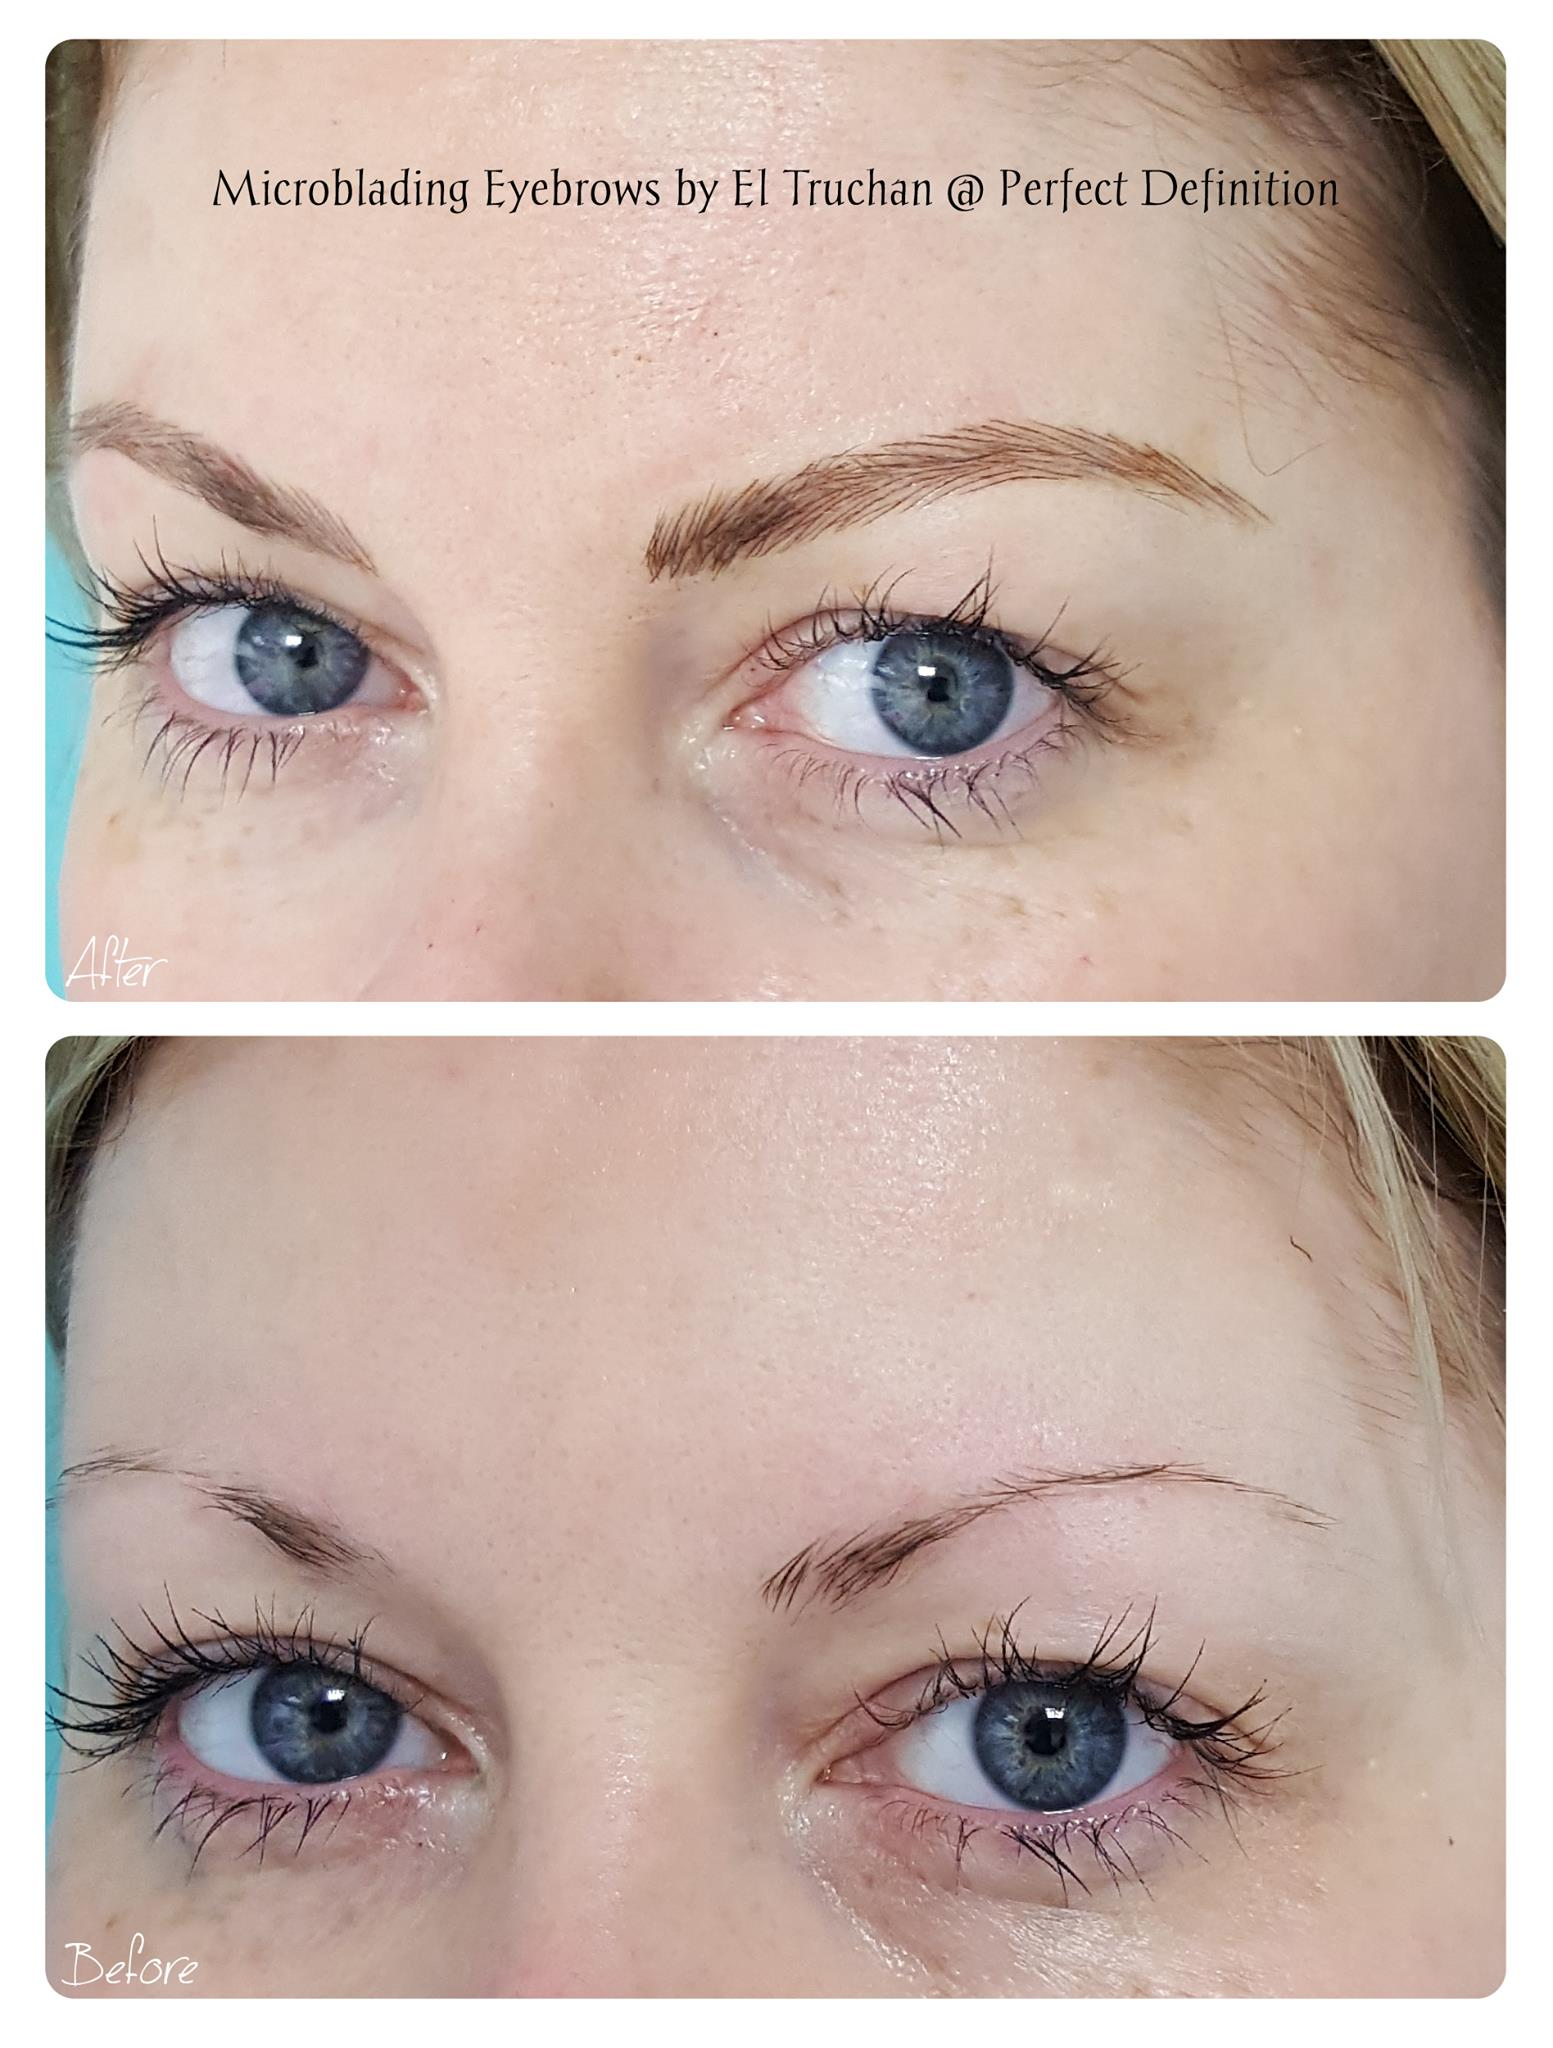 Microbladed Eyebrows by El Truchan